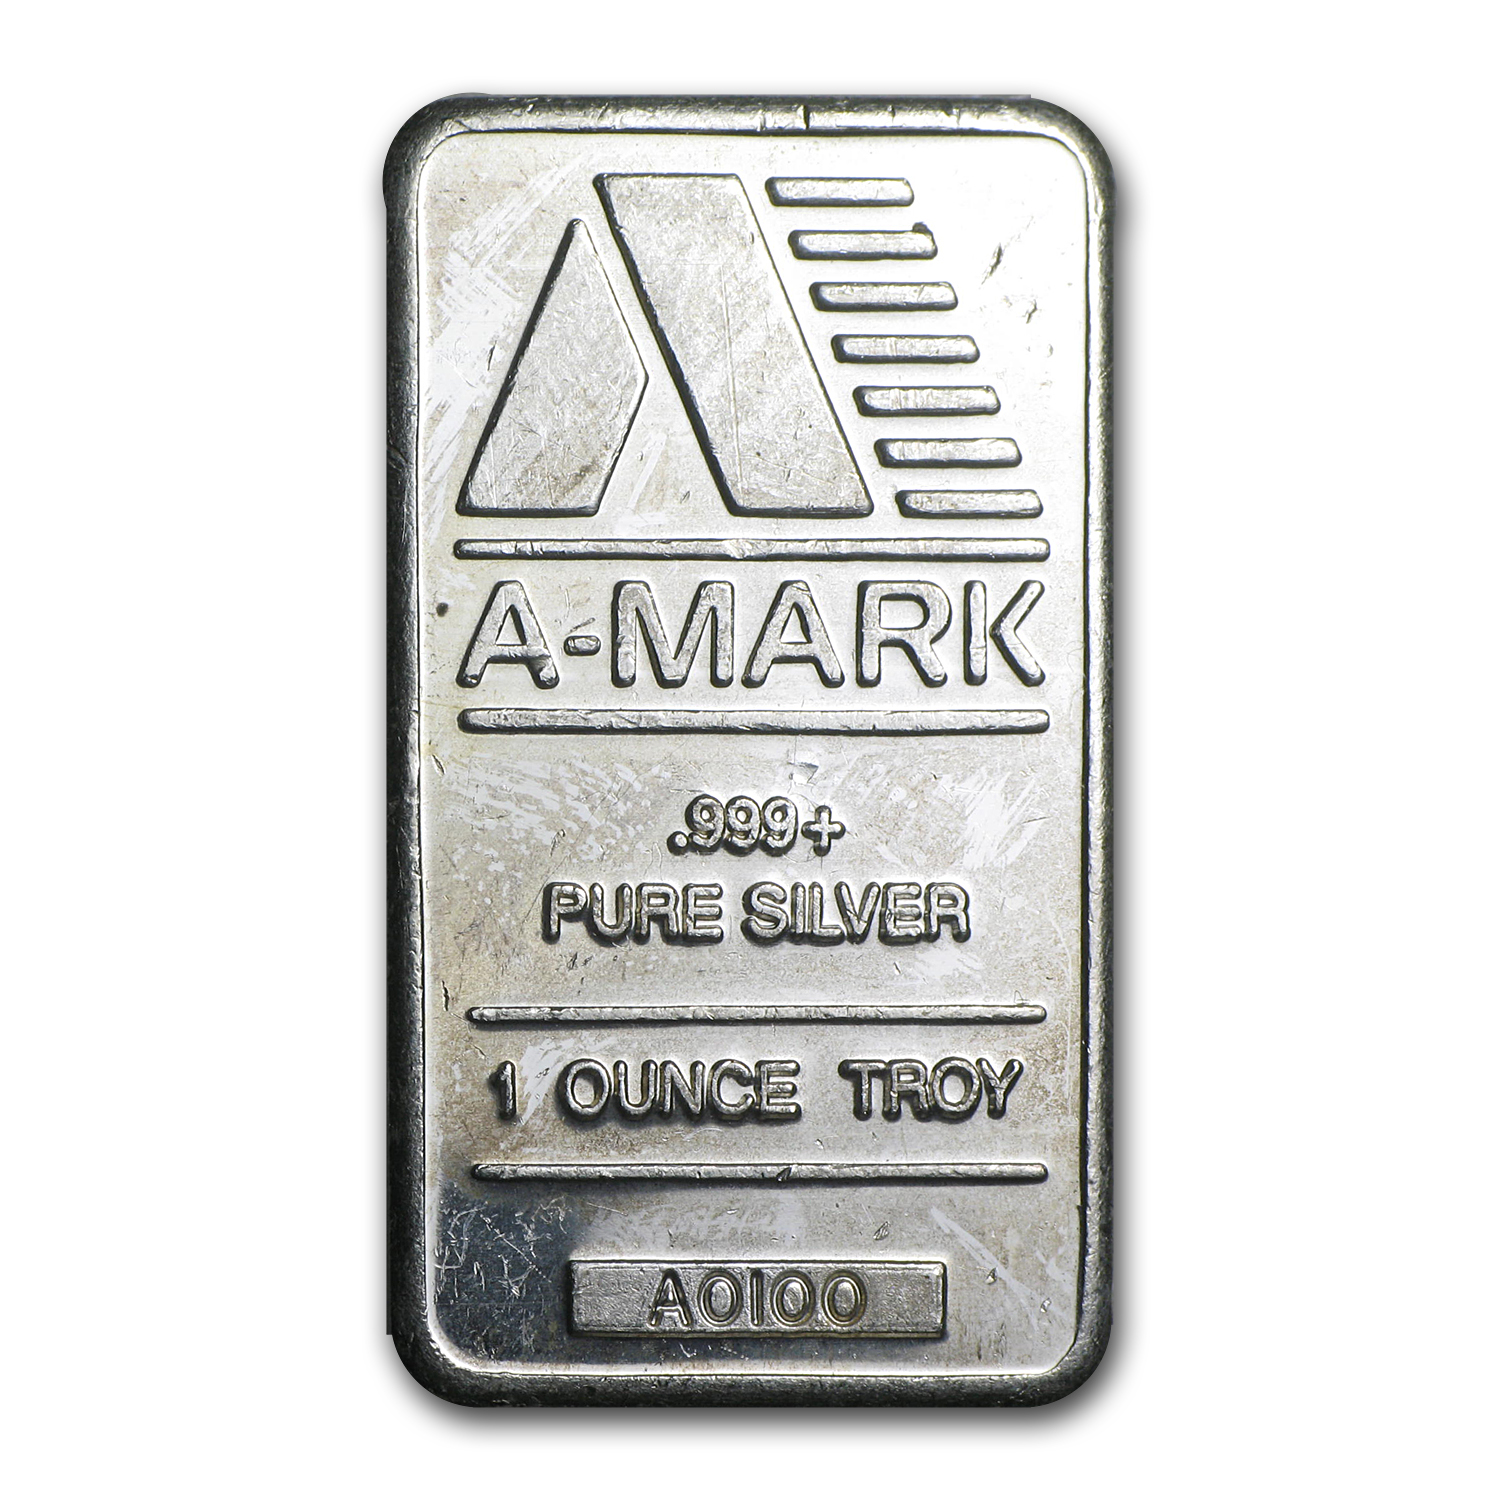 1 oz Silver Bar - A-Mark (Vintage)